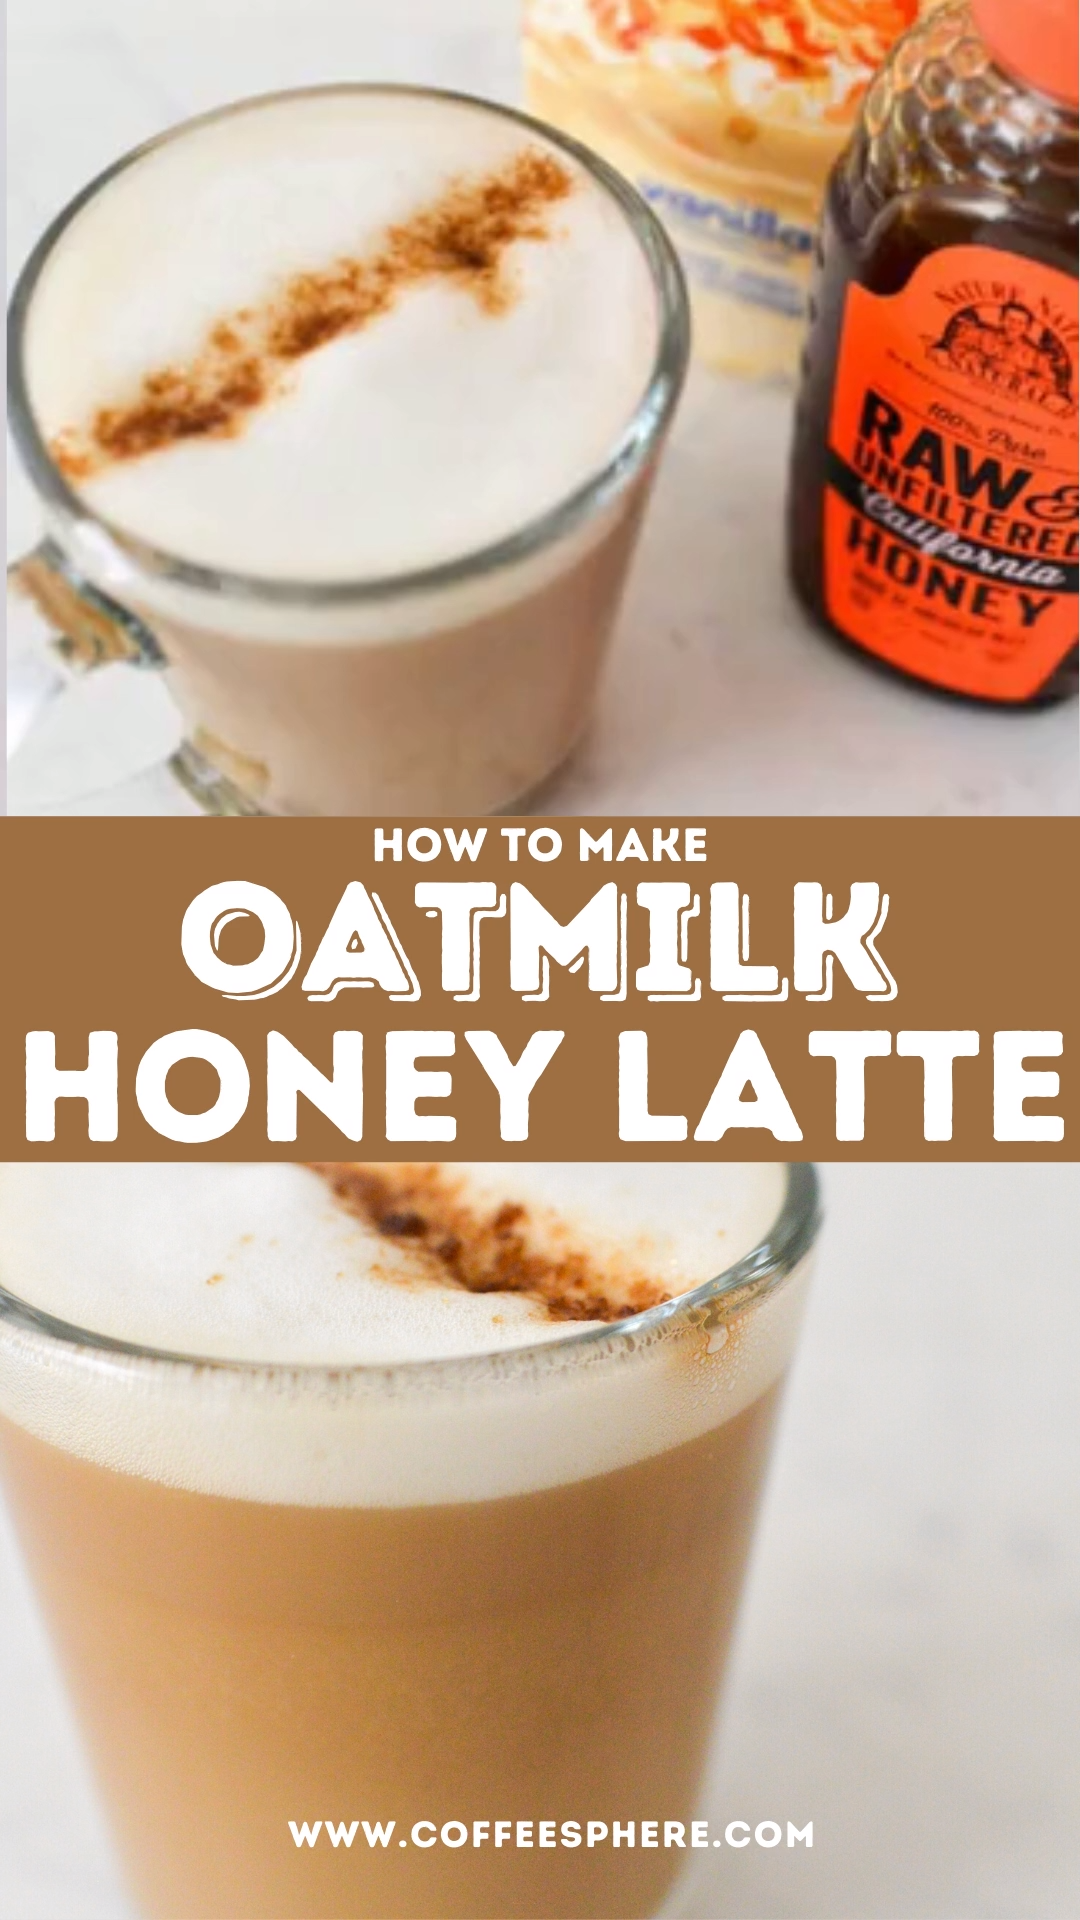 Photo of Oatmilk Honey Latte Recipe